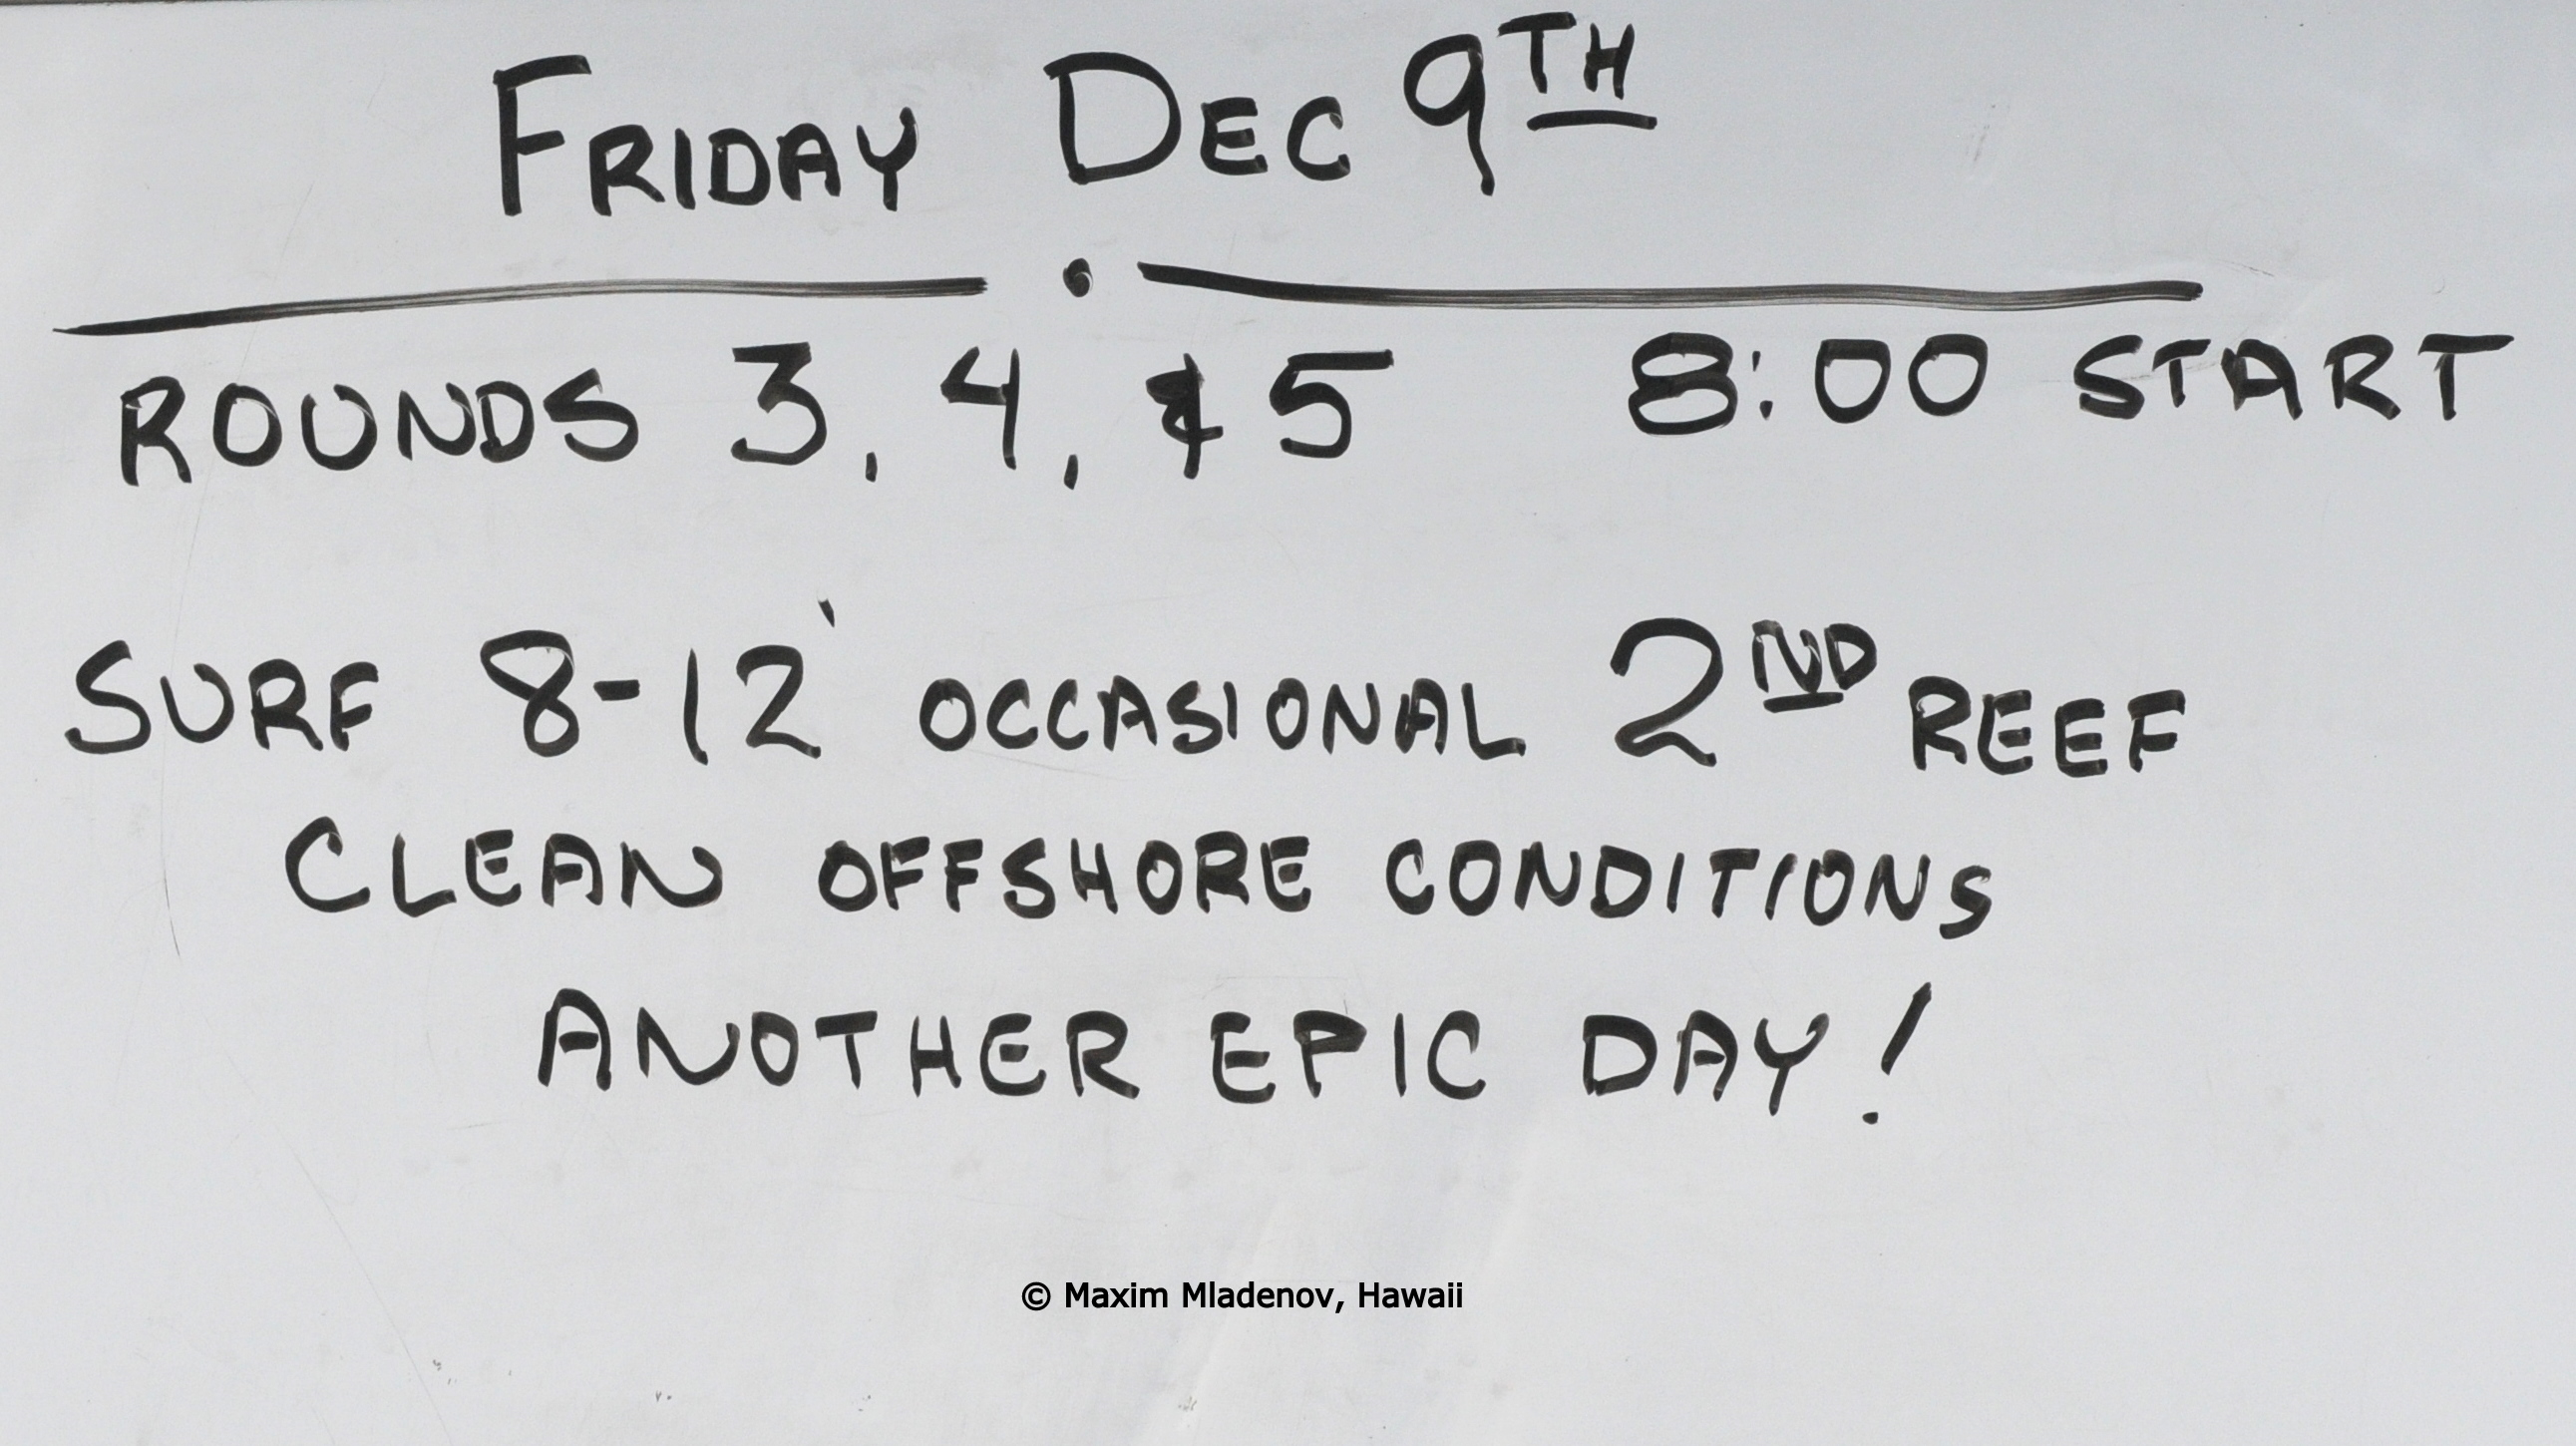 Another Epic Day, 09-12-2011 © Maxim Mladenov, Hawaii